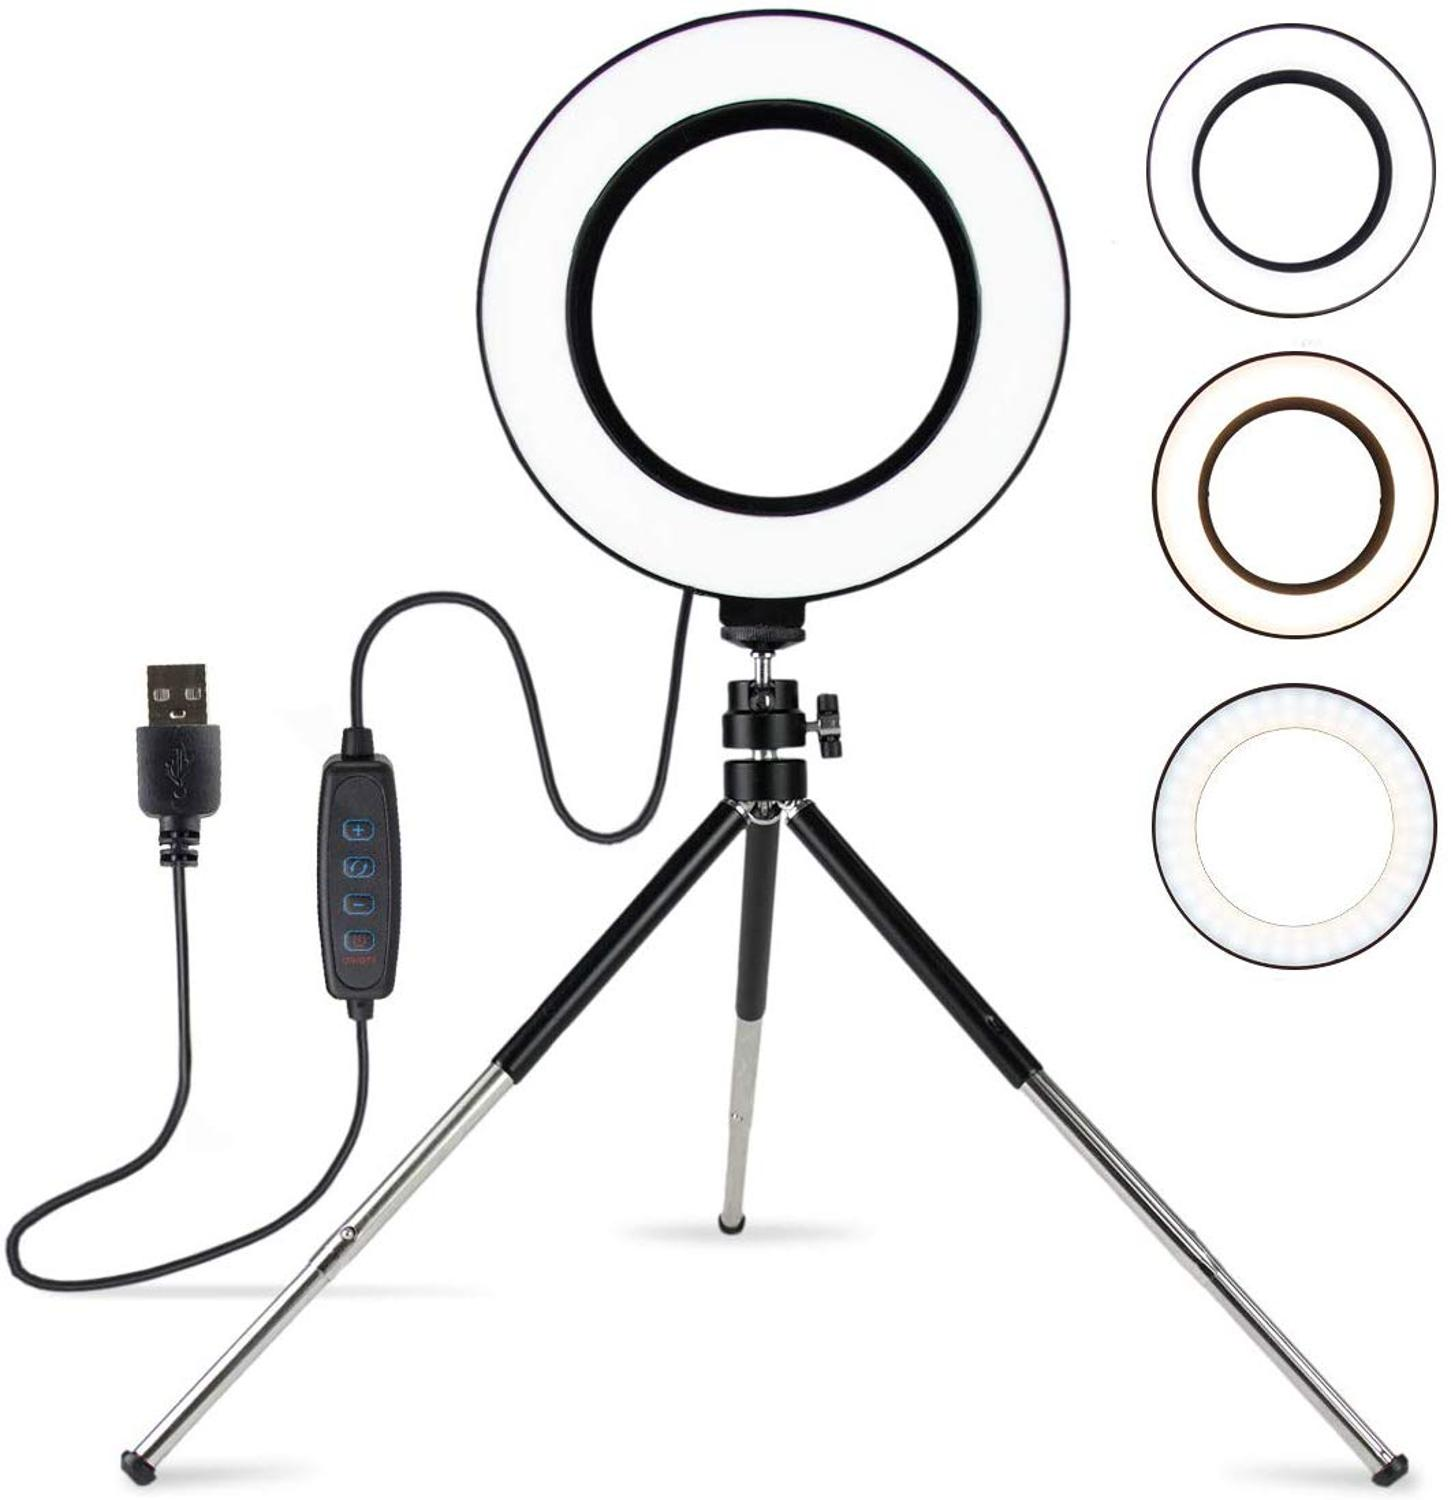 Zayex 6inch Mini LED Desktop Ring Light Photo Phone Video Light Lamp With Tripods For YouTube  Live Photo Photography Studio